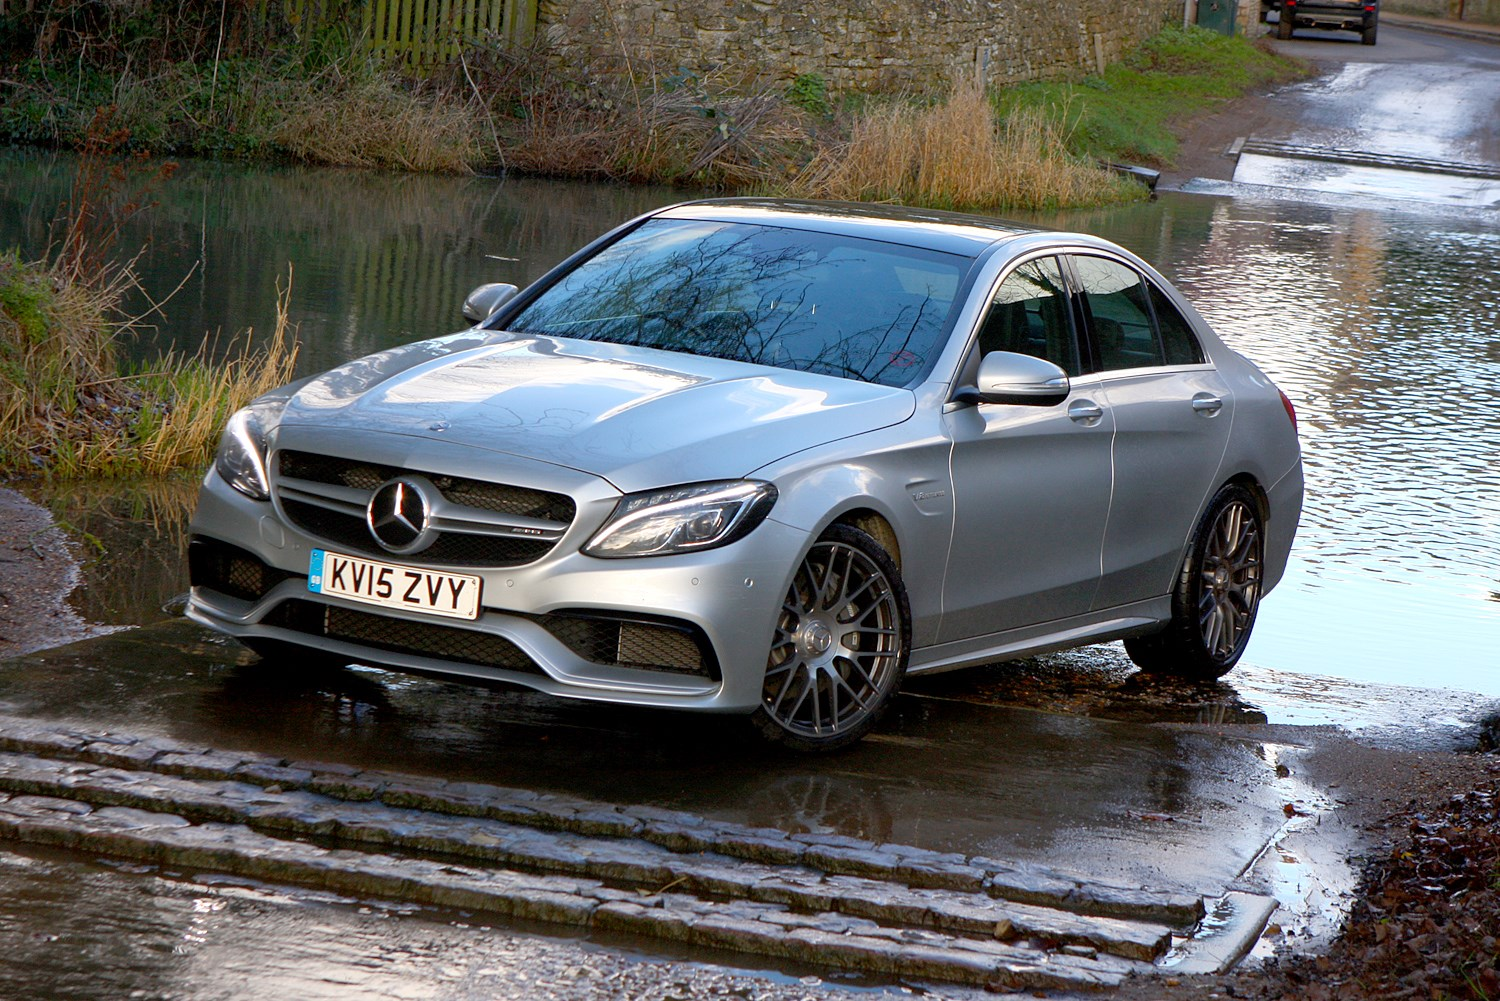 Mercedes benz c class amg 2015 photos parkers for Mercedes benz 300 amg